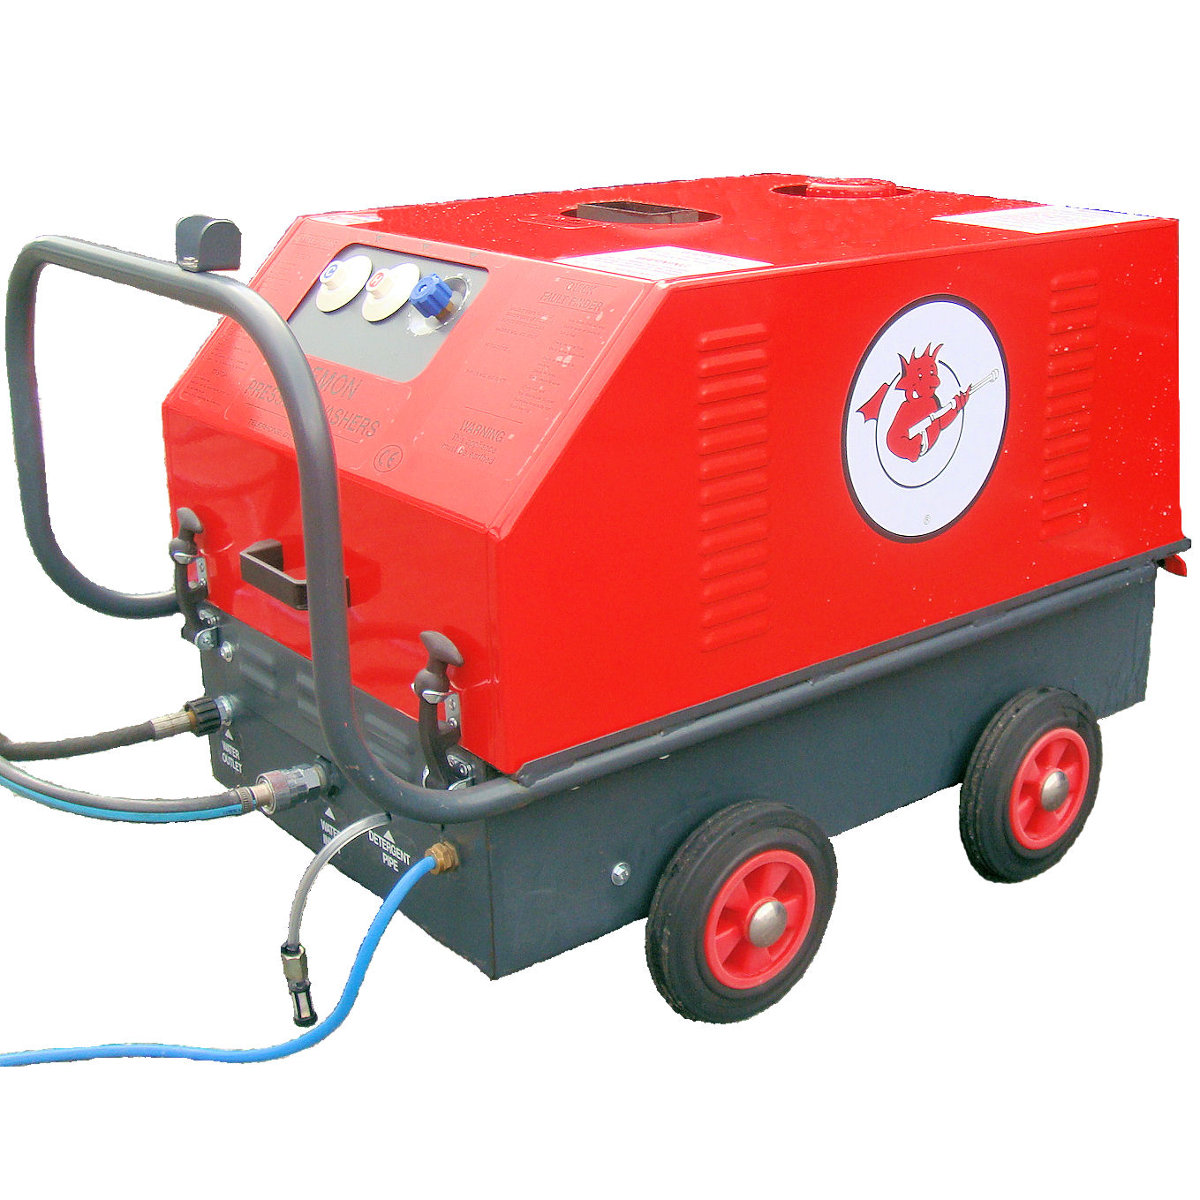 Pressure Washer Hot Water Electric Paraffin Wellers Hire